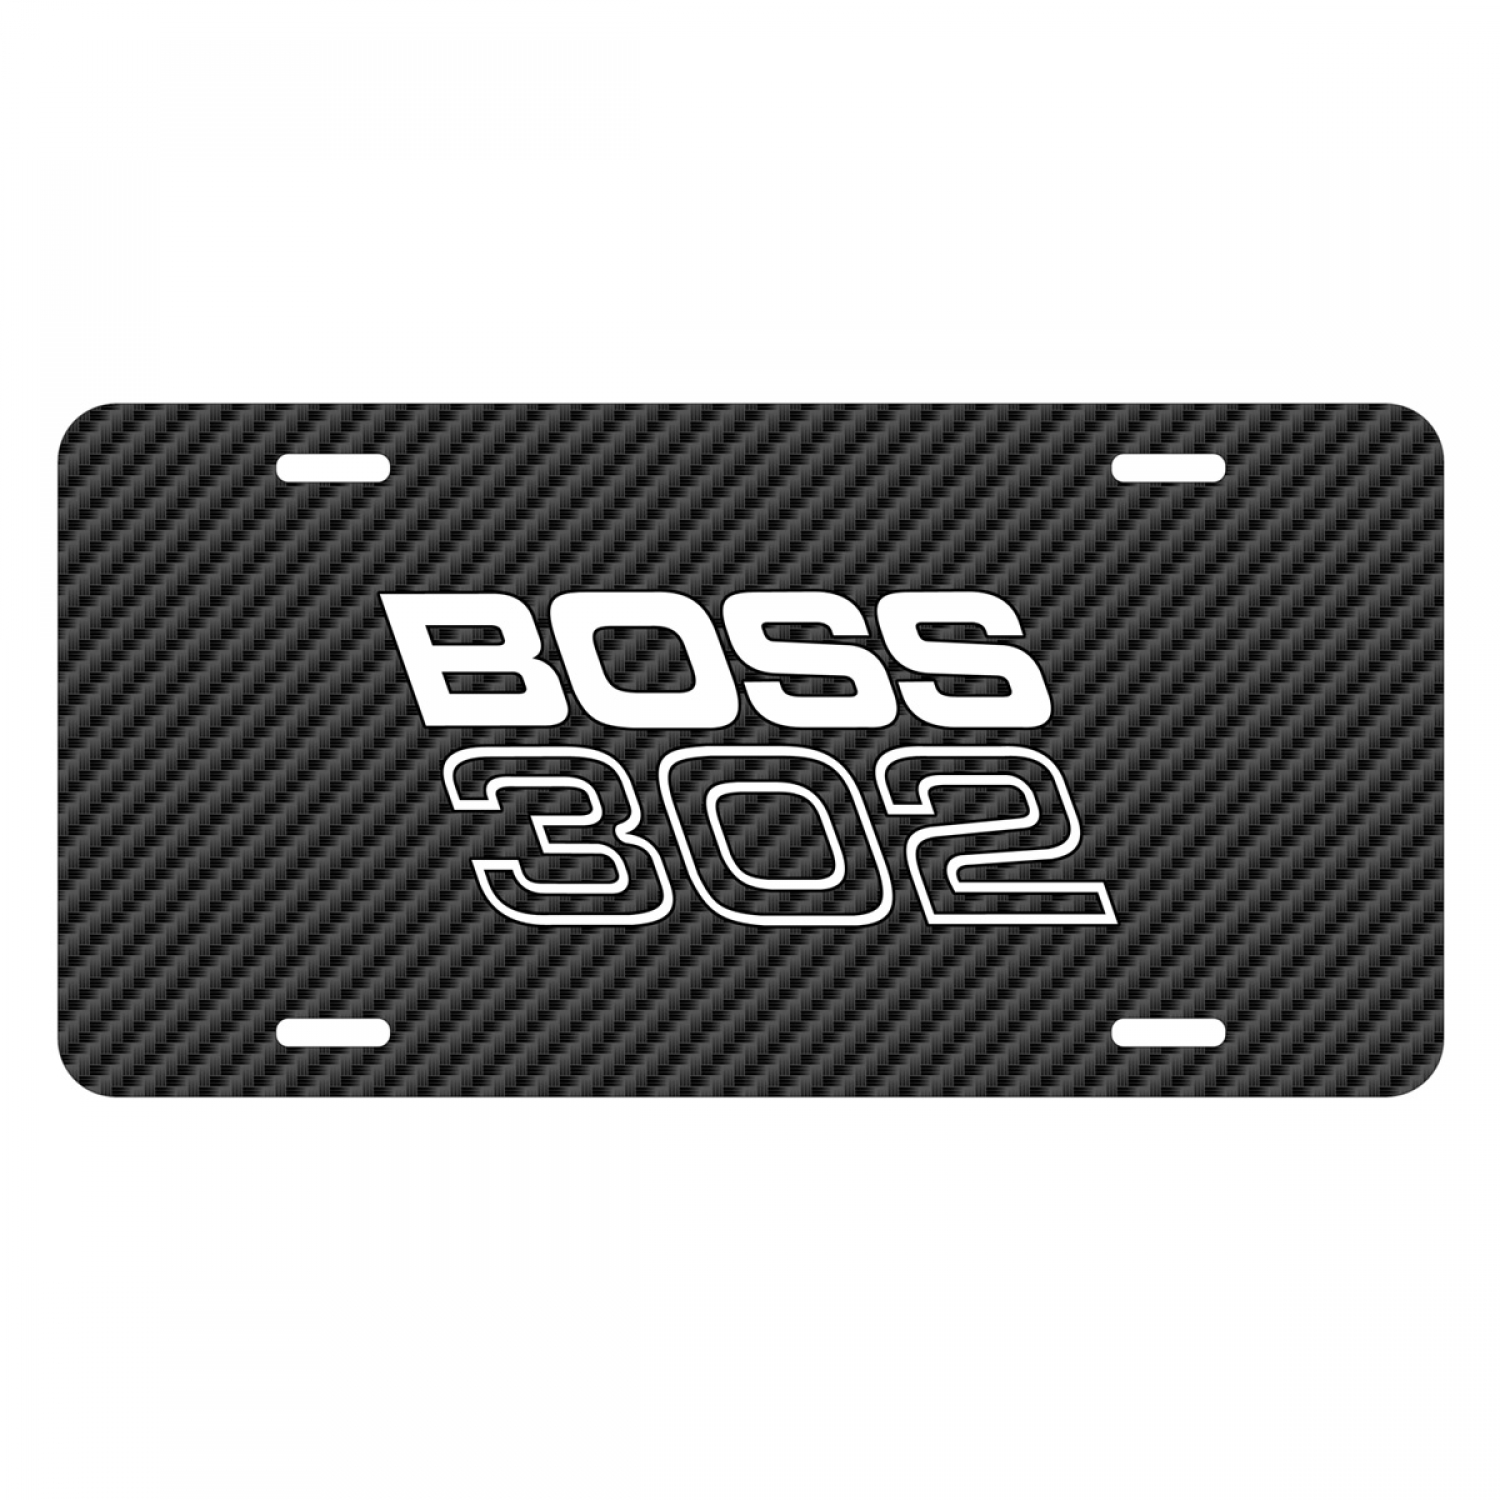 Ford Mustang Boss 302 Black Carbon Fiber Texture Graphic UV Metal License Plate